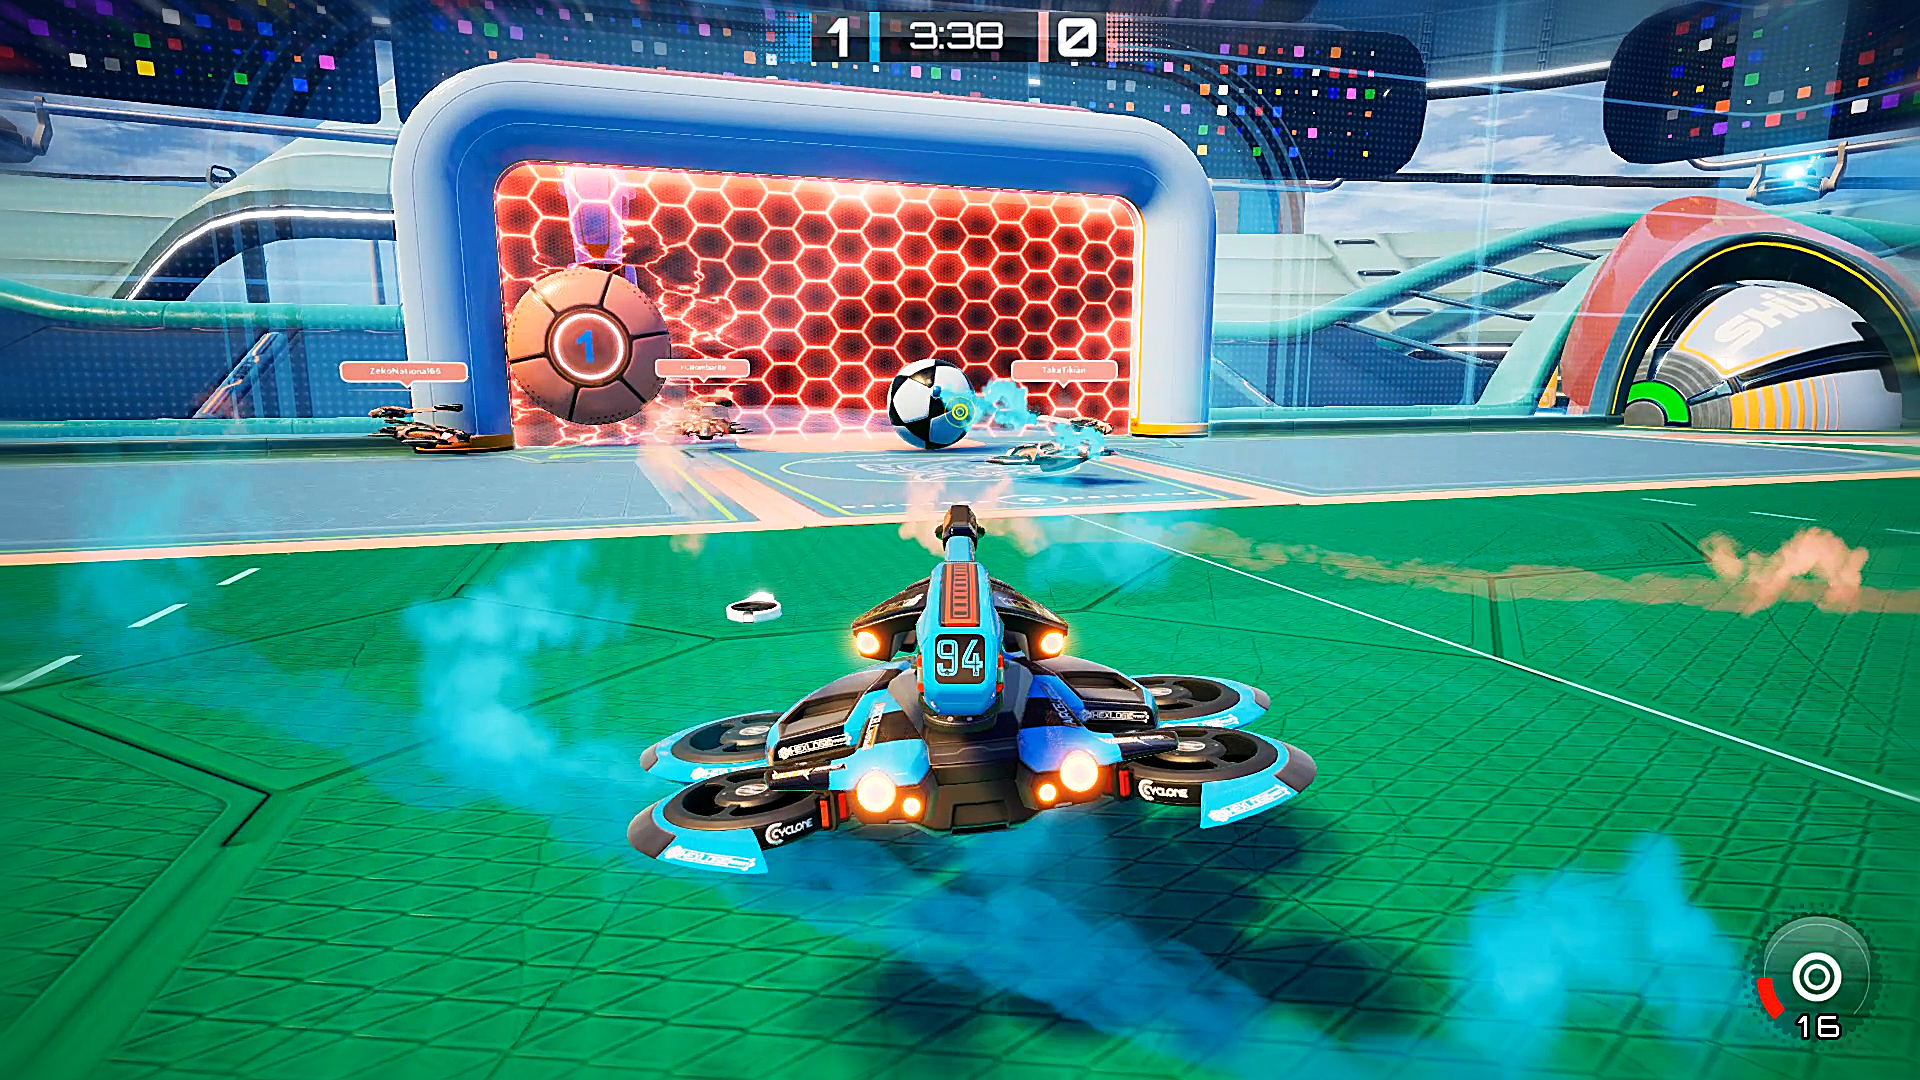 The Rocket League like Axiom Soccer is and out today on Steam 1920x1080